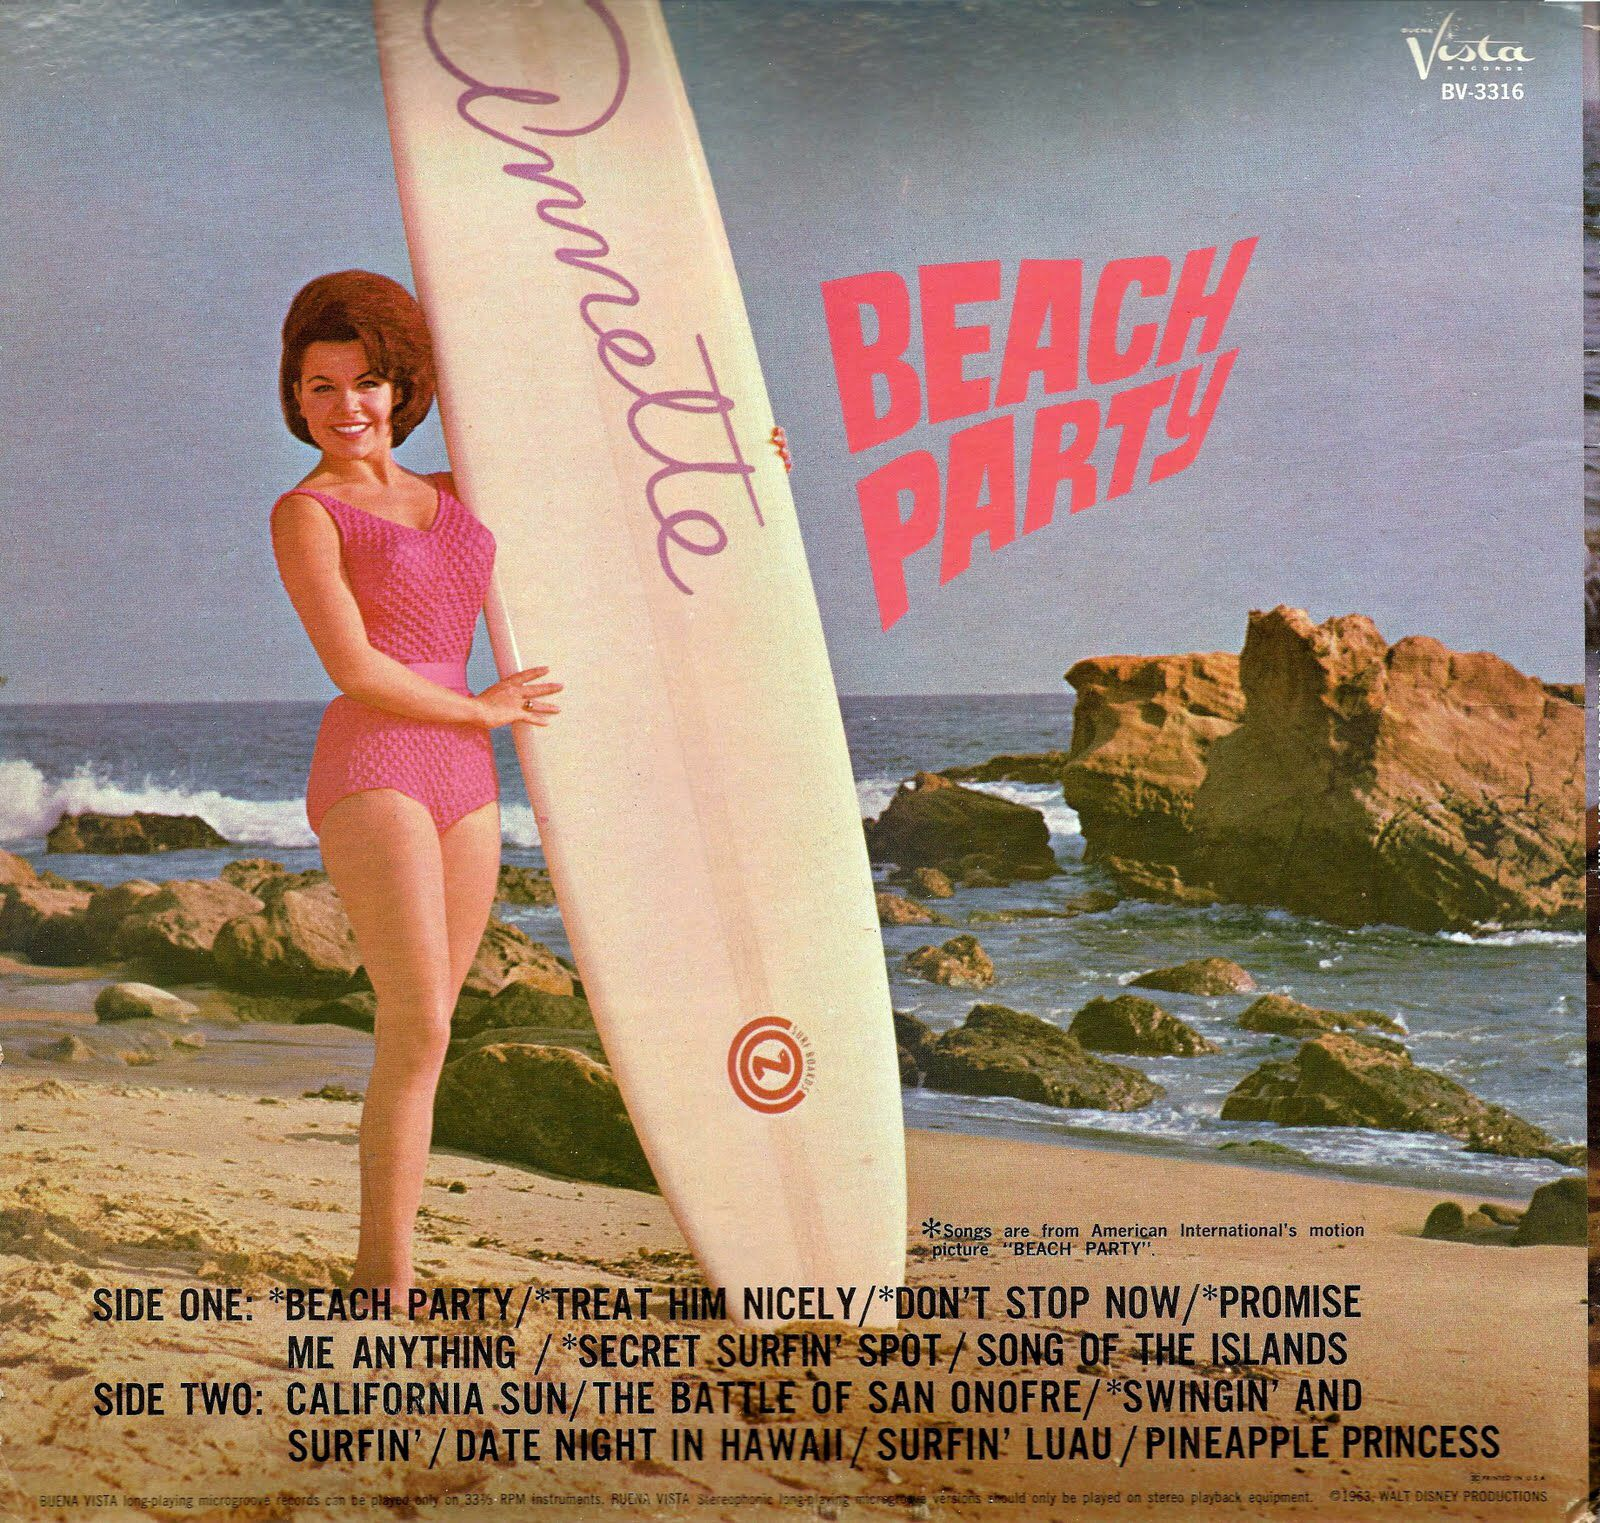 annette funicello beach movies - Annette Funicello - 'Beach Party' cover art, Remember all the beach Party  movies with Annette and Frankie Avalon?